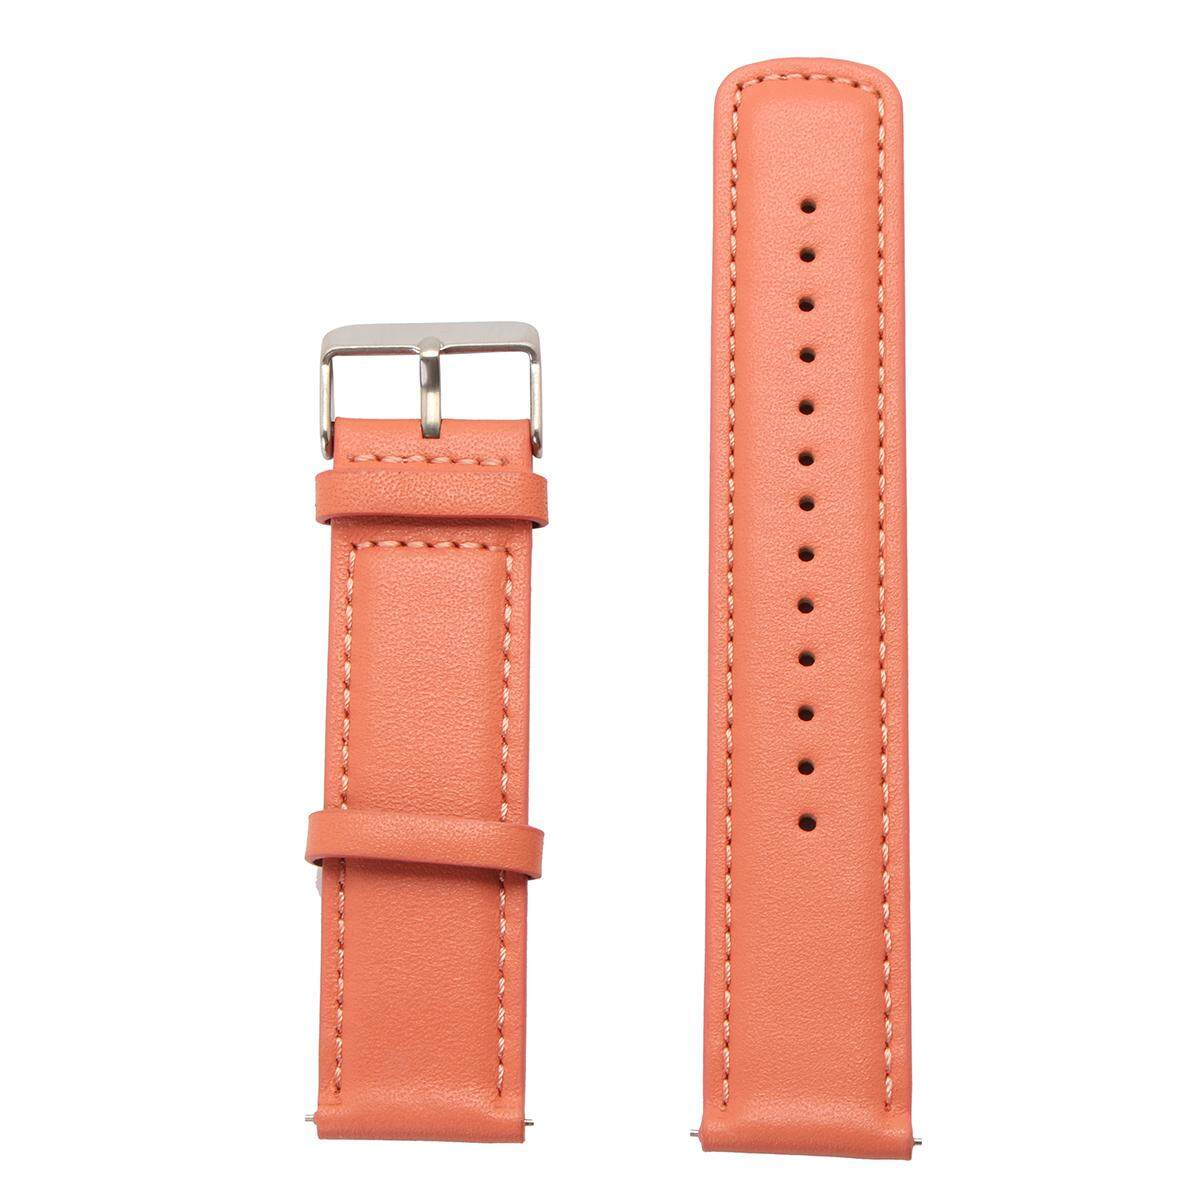 Hình ảnh 22Mm Leather Watch Band Strap Bracelet Pebble Time Steel for Samsung Galaxy Gear 2 S - intl